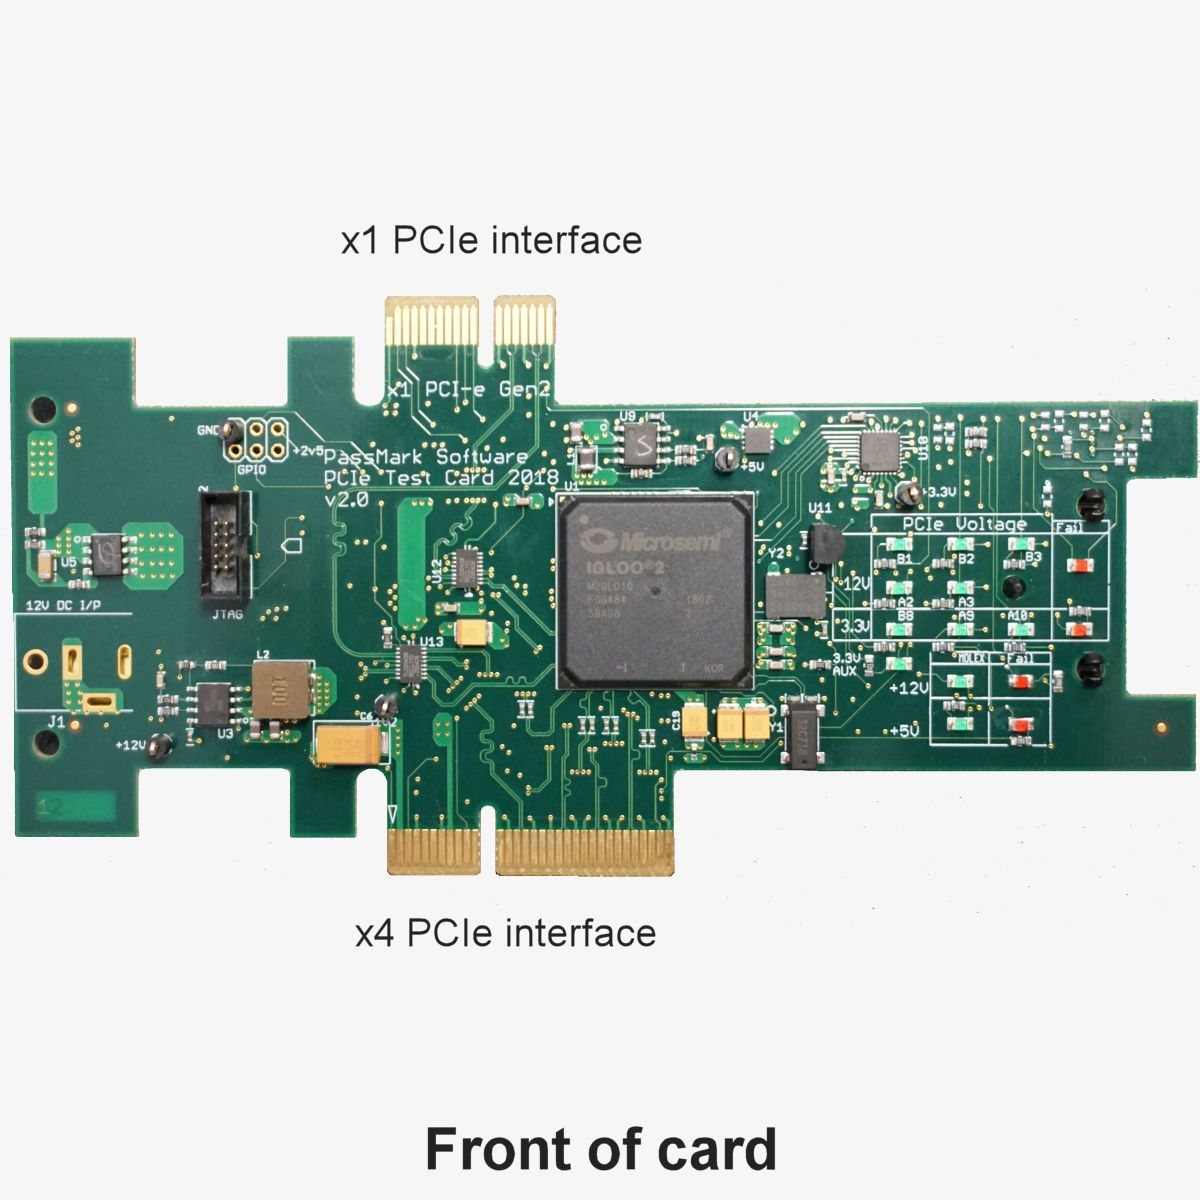 PassMark Software - PCIe Gen2 Test Cards and Software